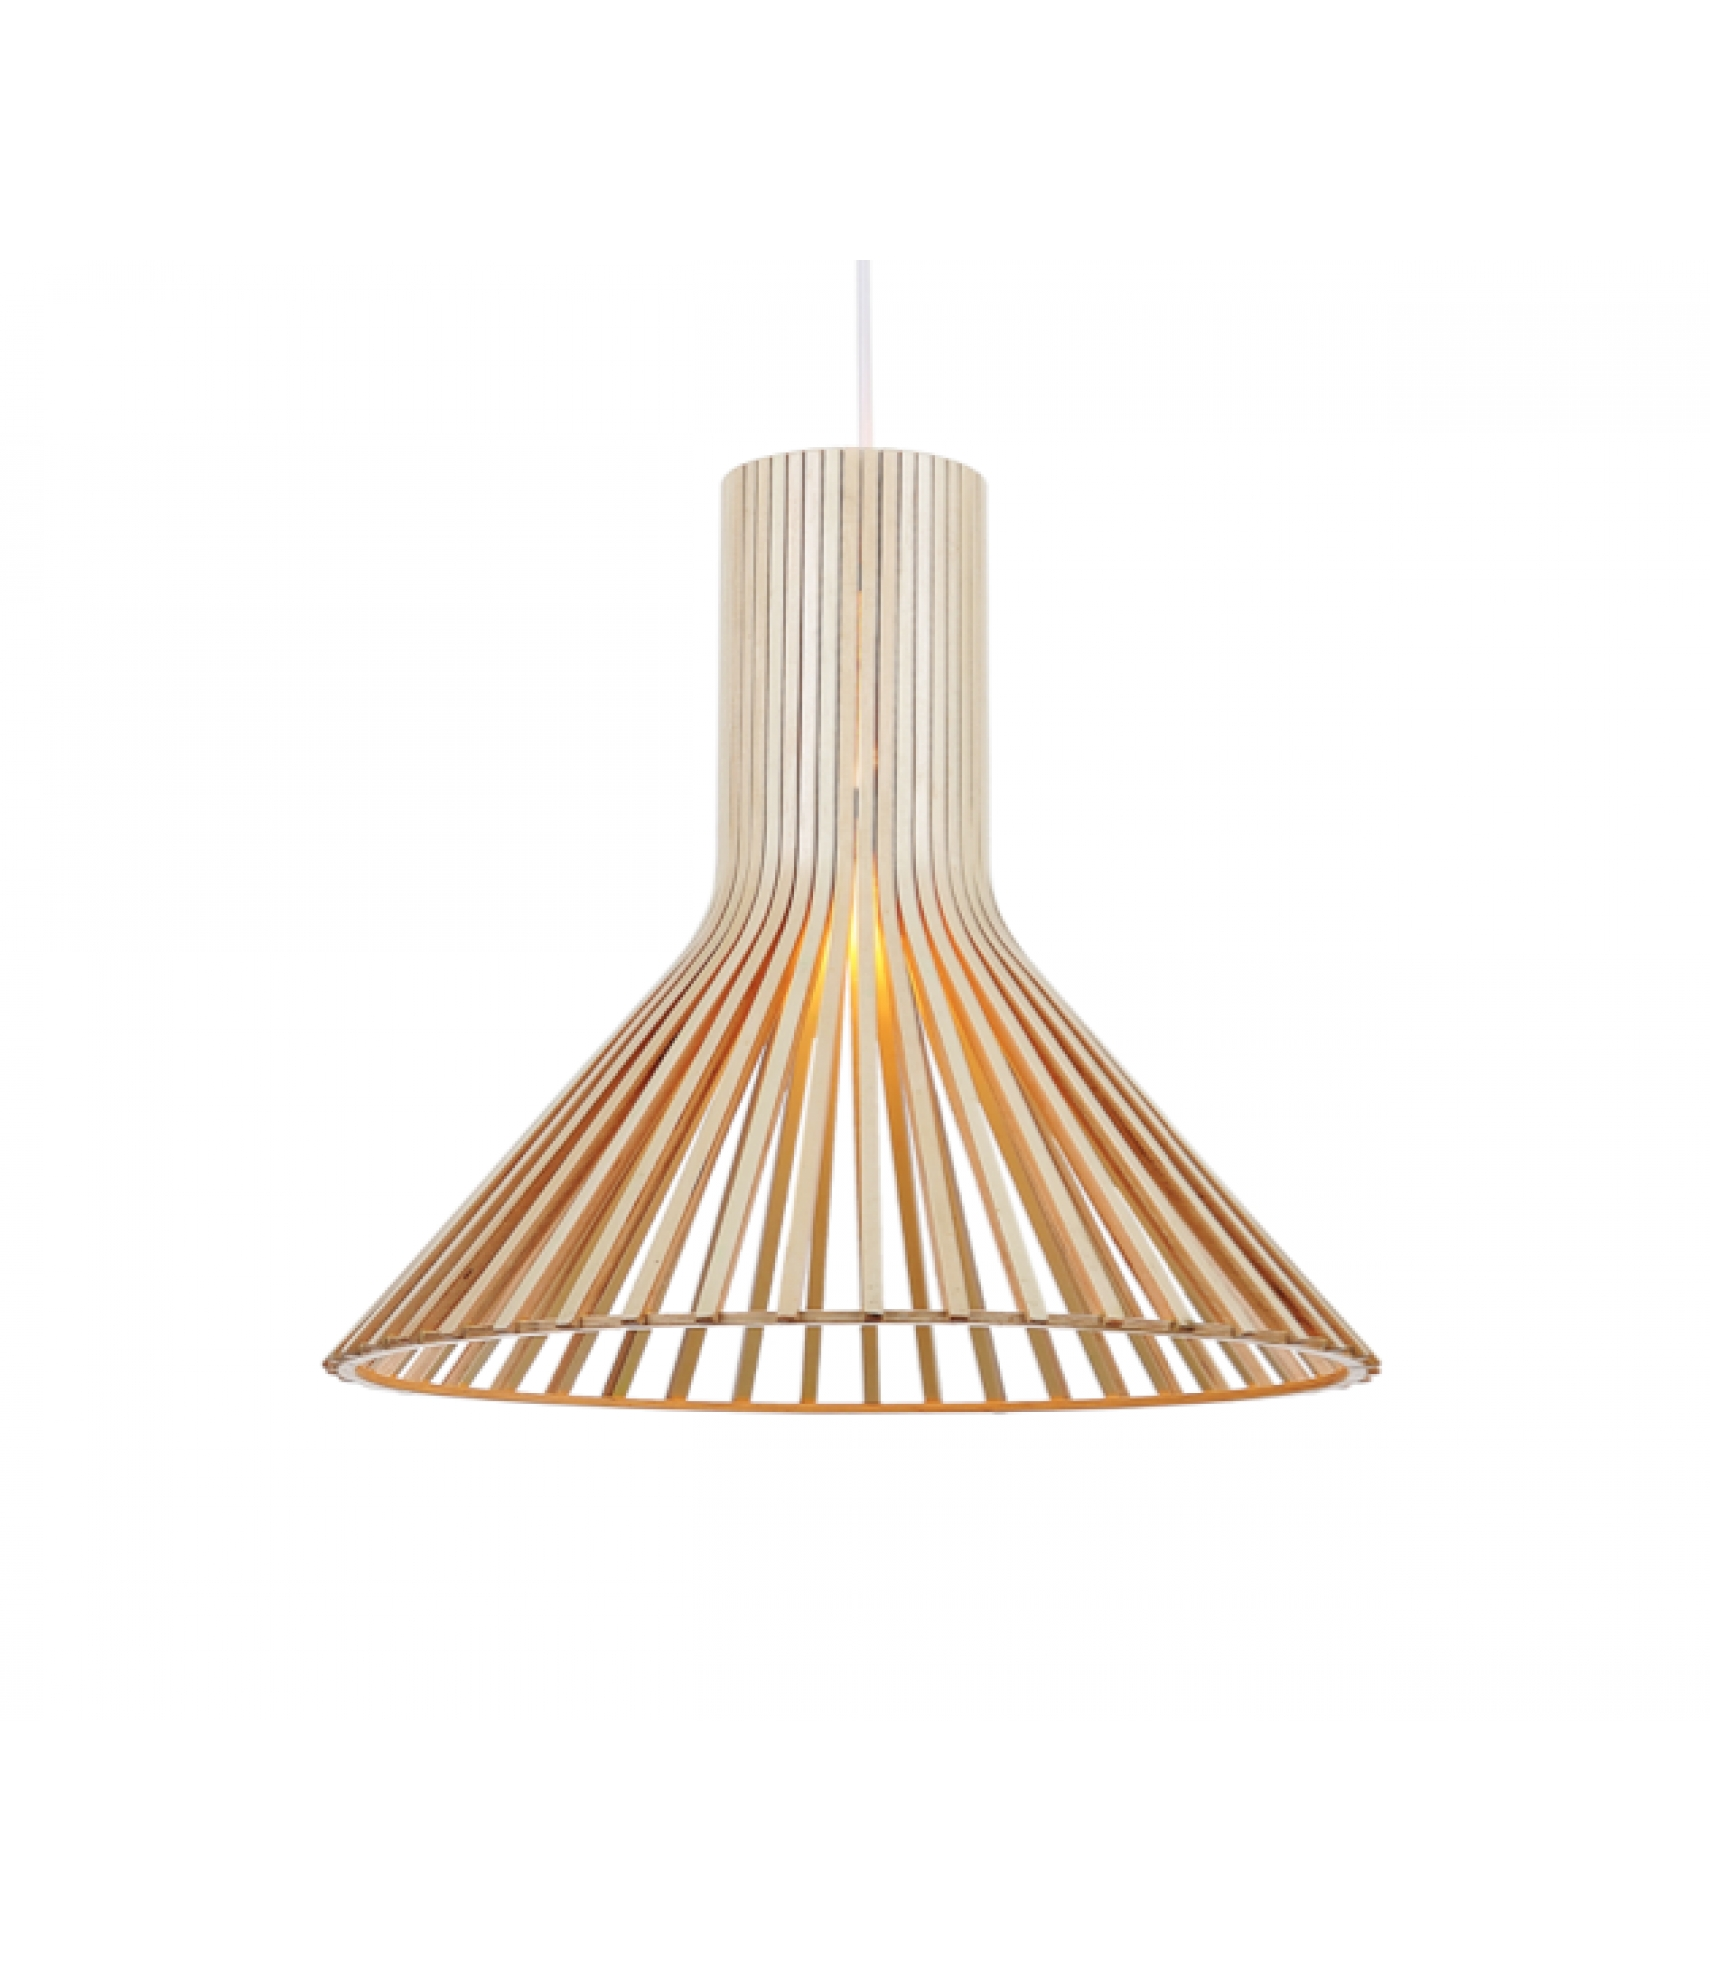 Lucretia Lighting | Tailored Designer Lighting Solutions | Replica Regarding Timber Pendant Lights (View 7 of 15)